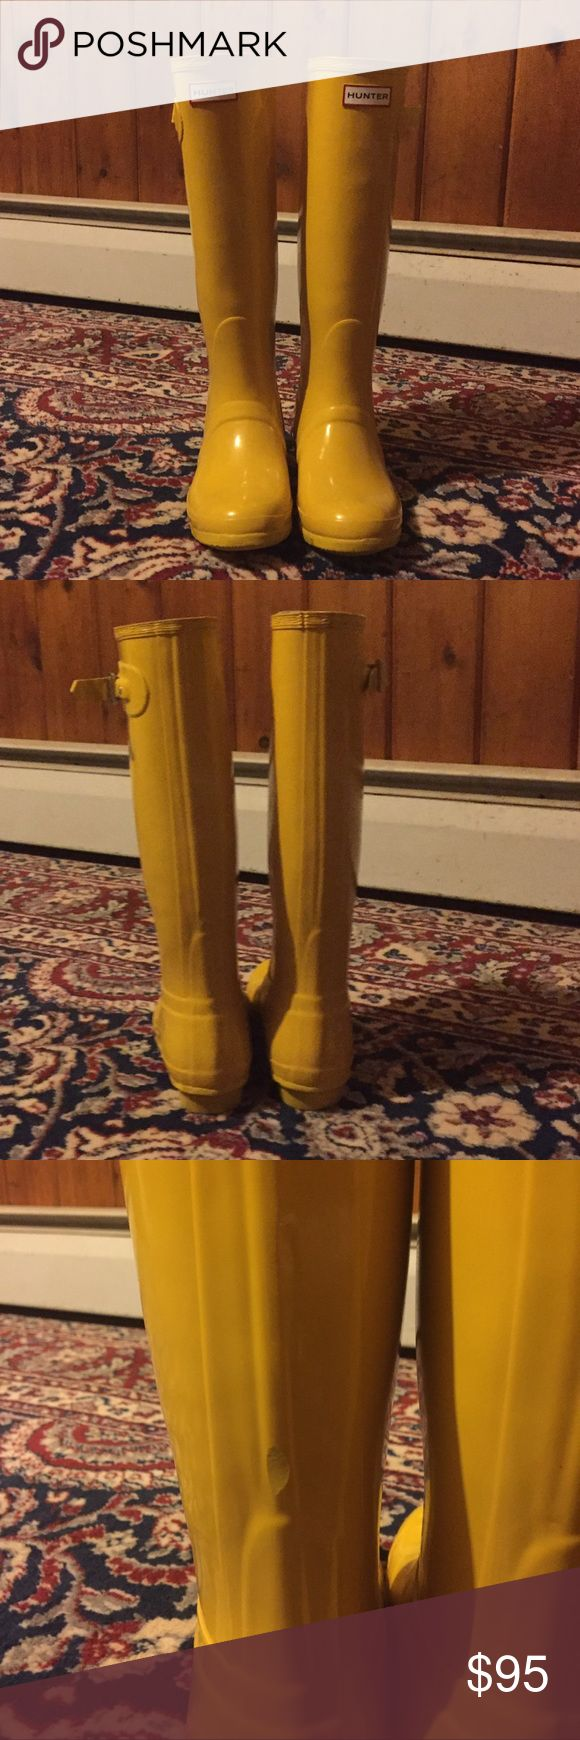 Yellow Hunter Rain Boots Awesome condition like new yellow tall hunter rain boots! Purchased from another posher but they were the wrong size, only tried them on! Will accept reasonable offer! Hunter Boots Shoes Winter & Rain Boots